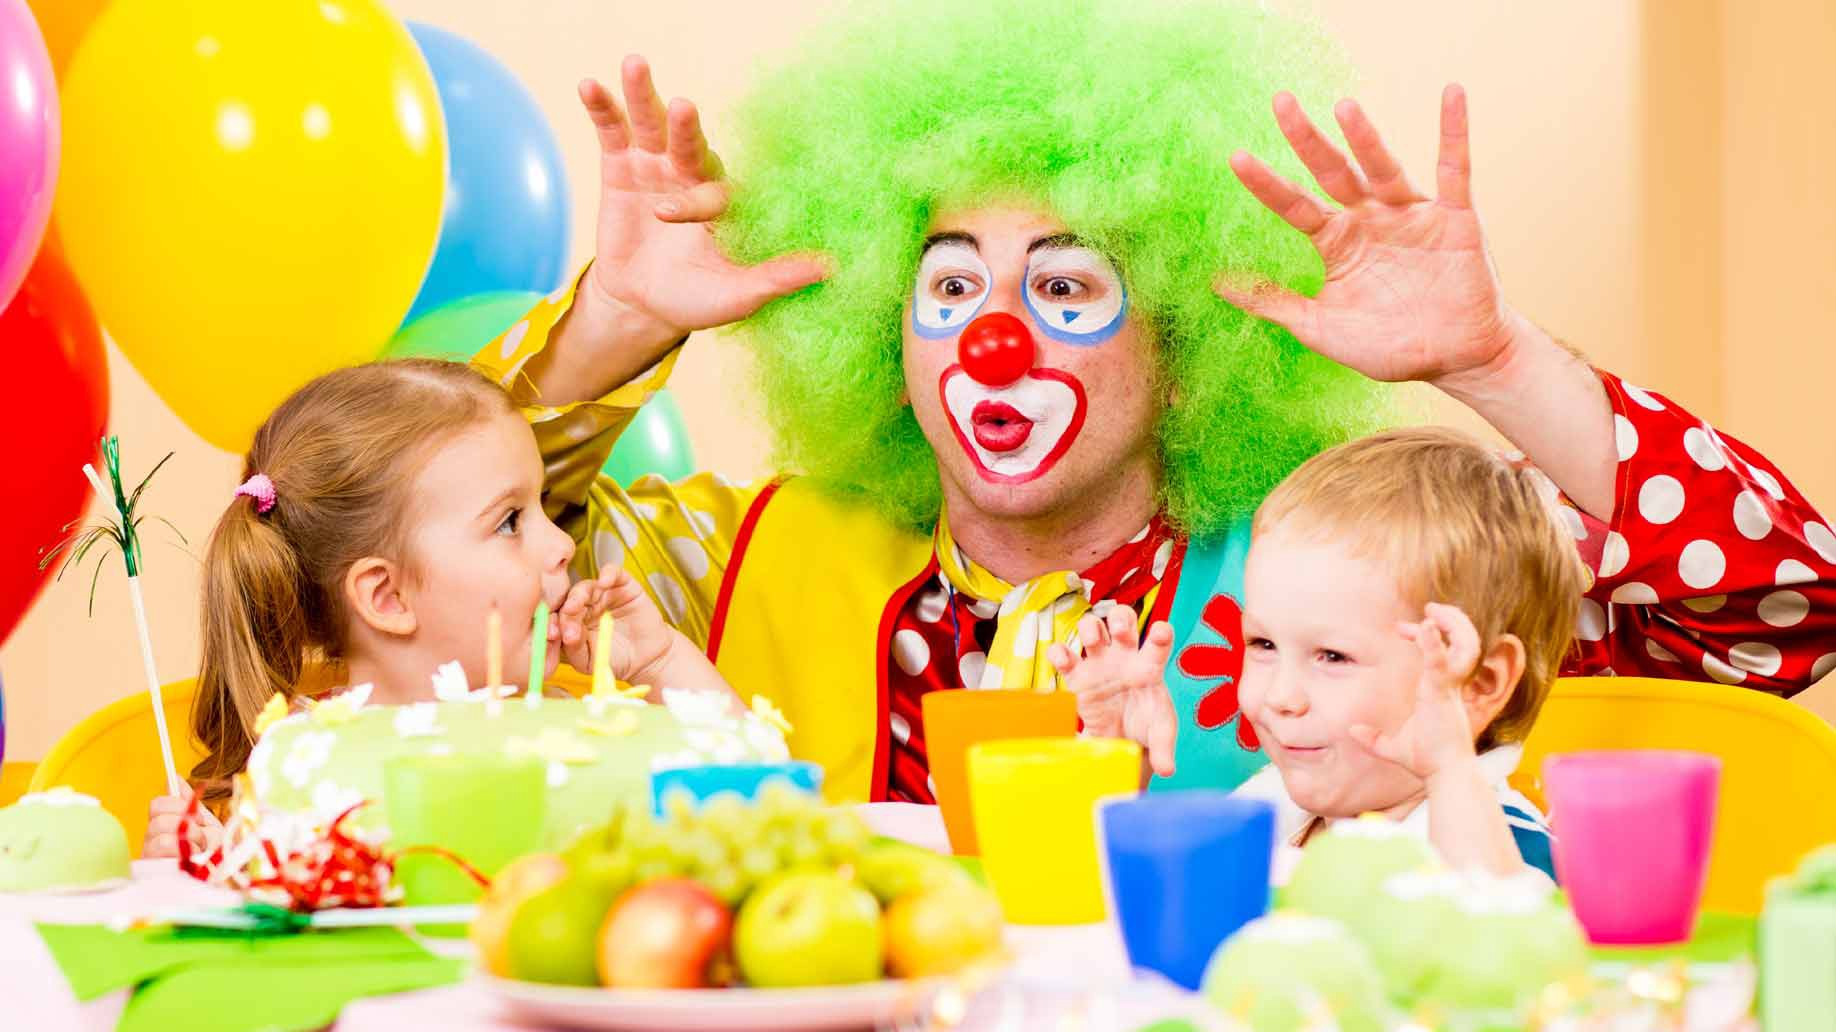 Kids Party Entertainment - The Wow Factory - Medium